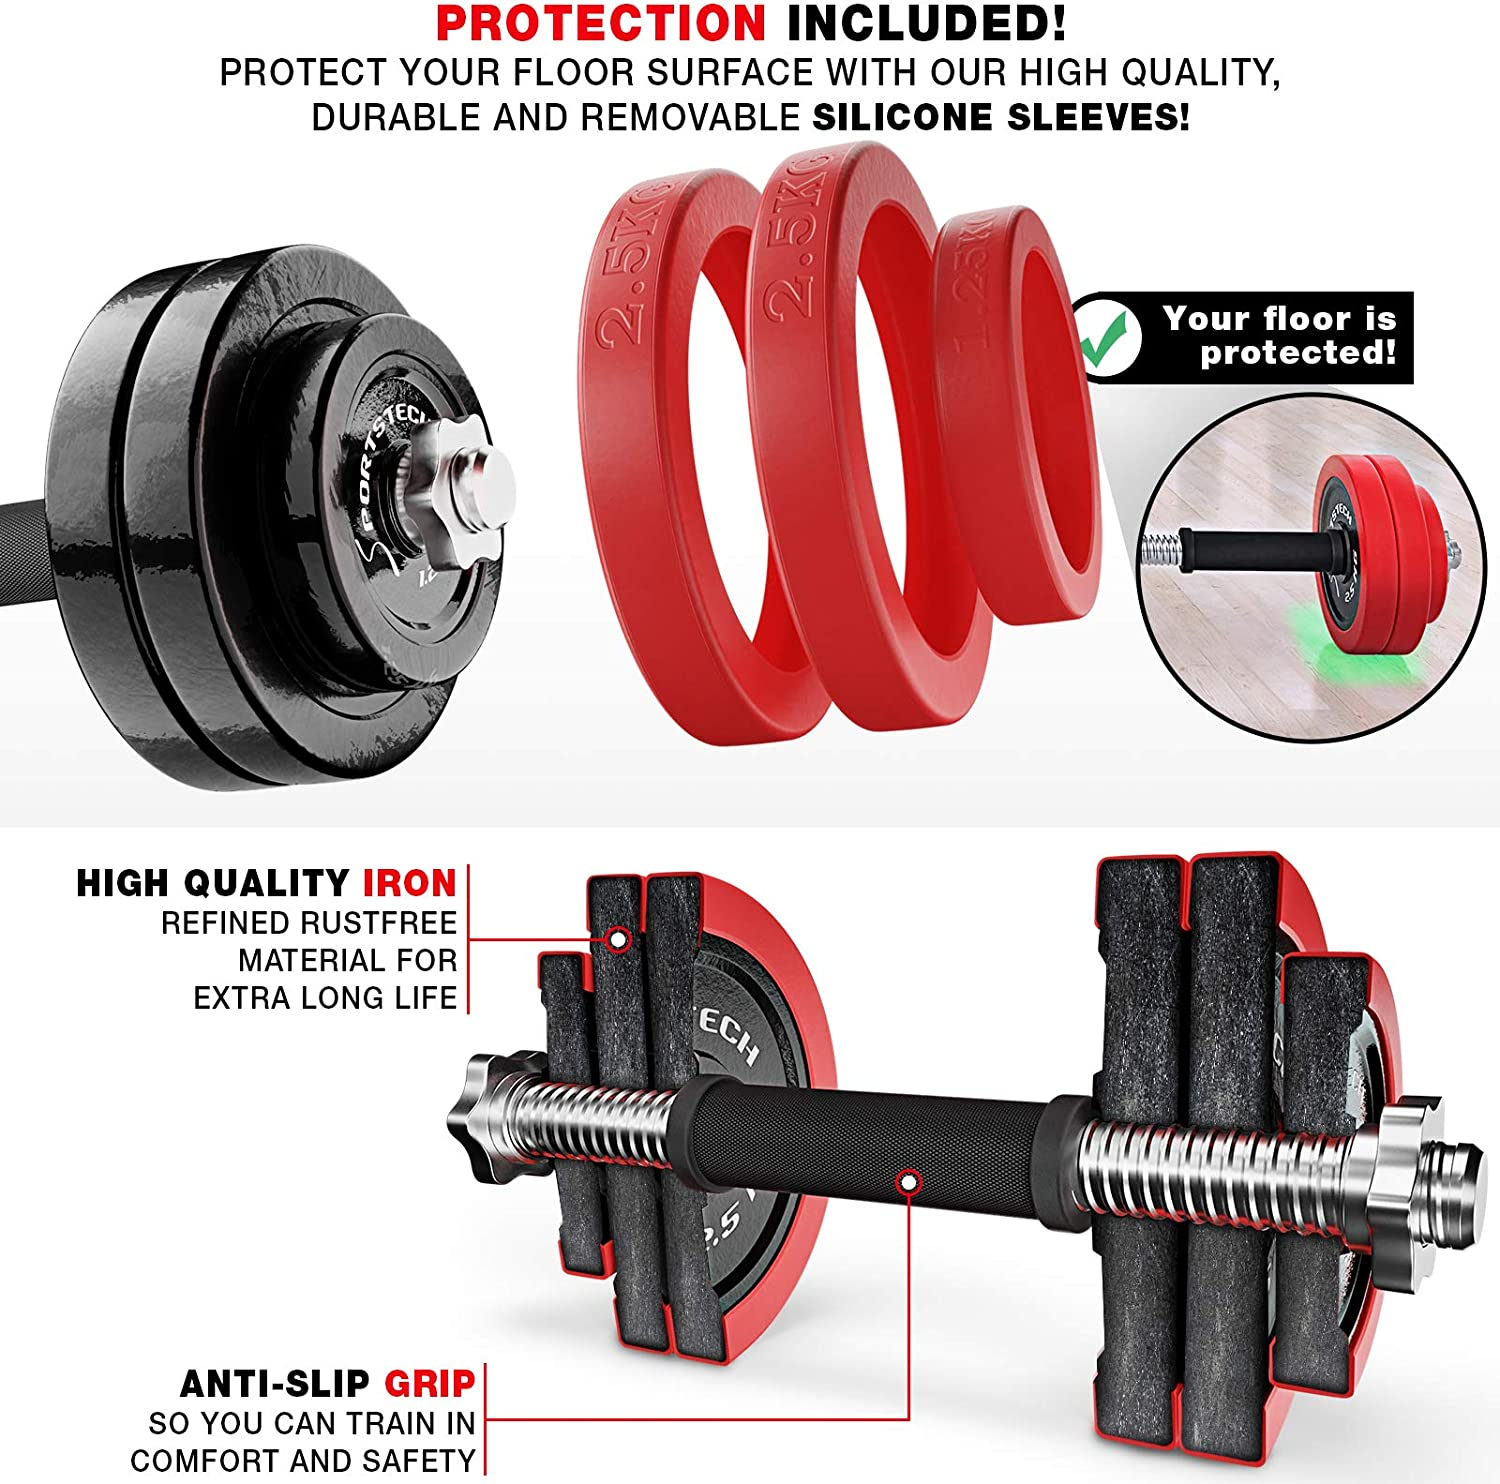 Sportstech 2in1 innovative Dumbbell & Barbell Set with Silicone Cover, Weights Adjustable Dumbbells in 20kg / 30kg of Cast Iron and with Connecting ...